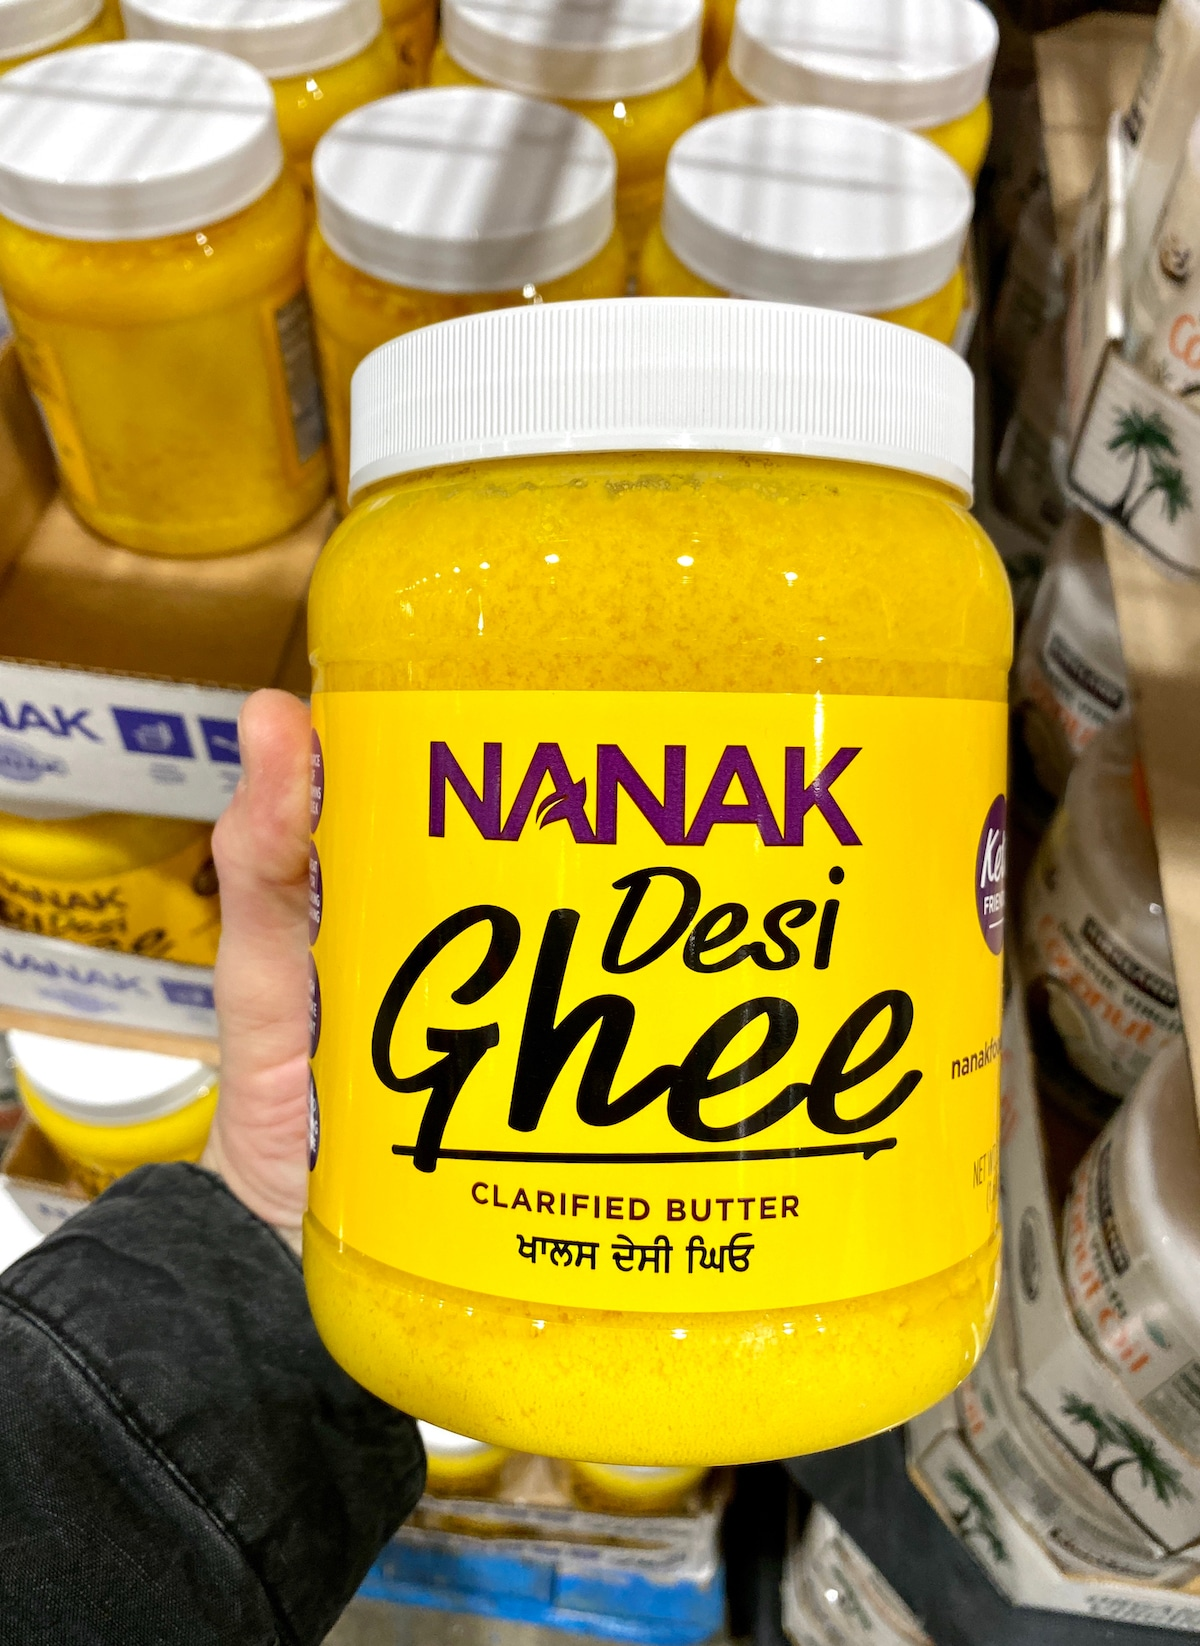 A picture of clarified butter / ghee